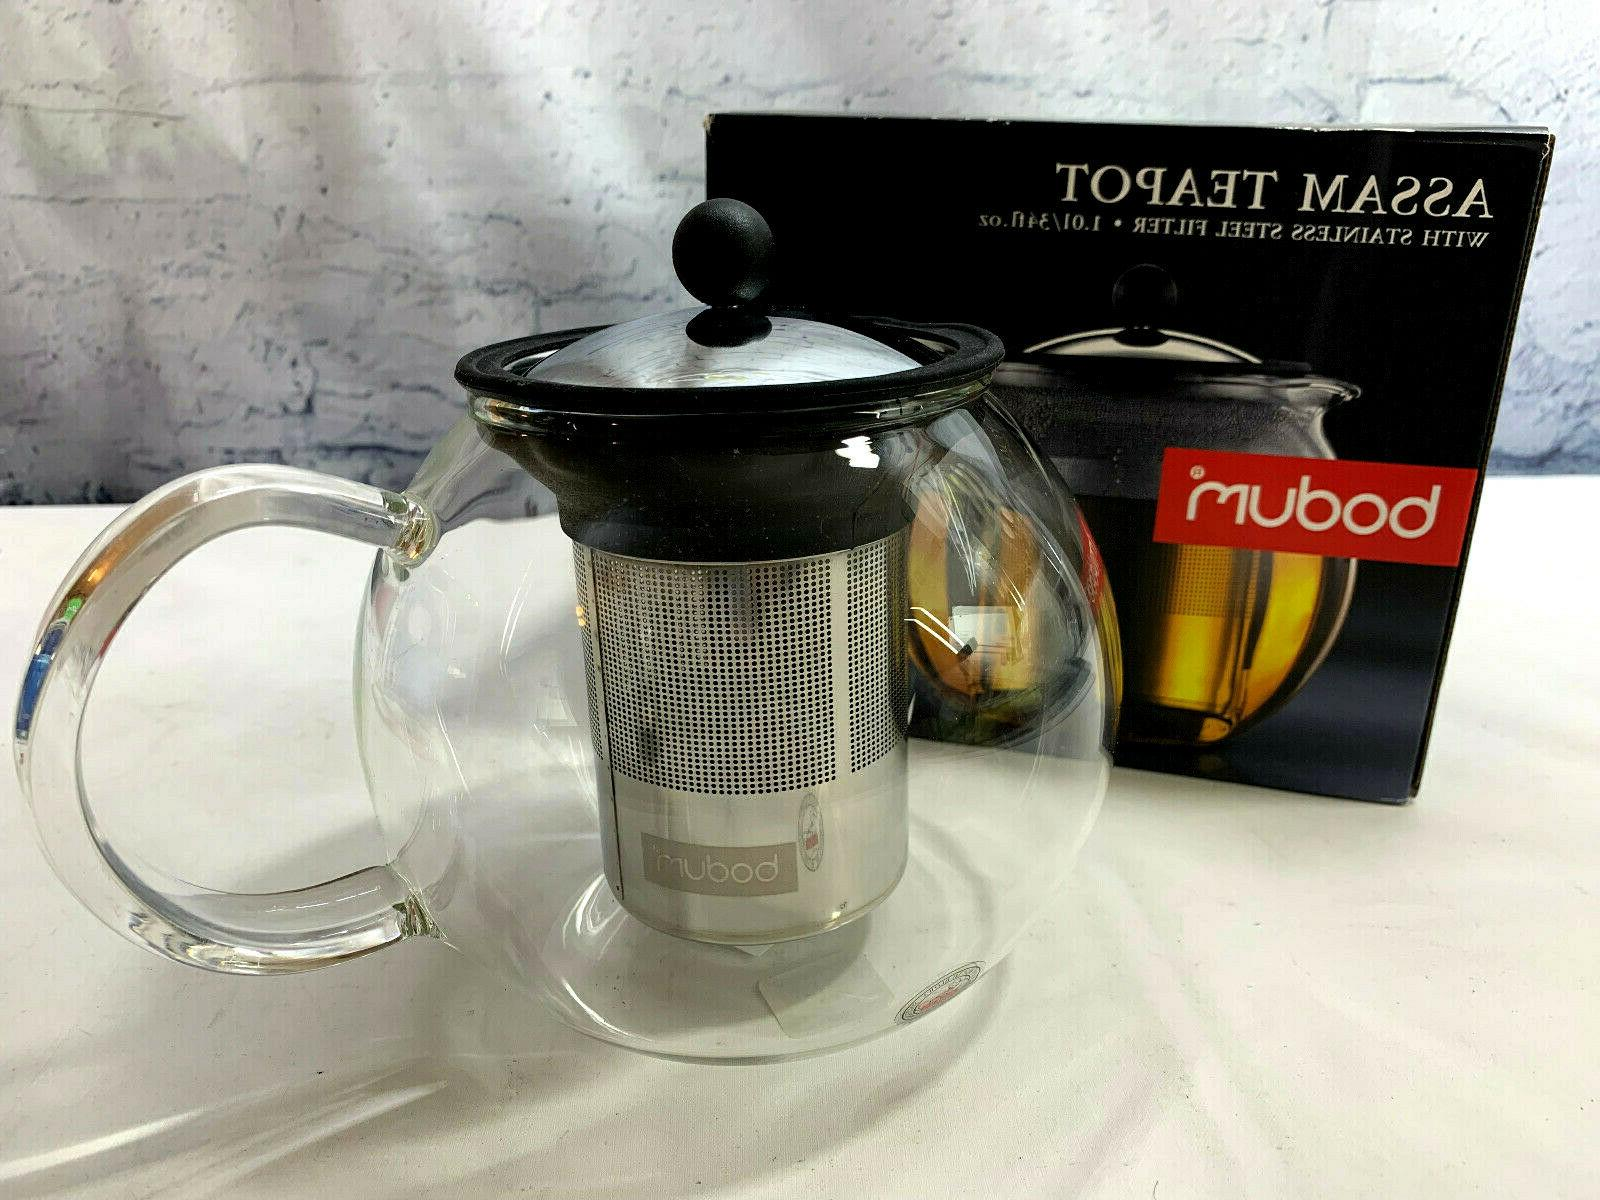 assam shiny tea pot with stainless steel